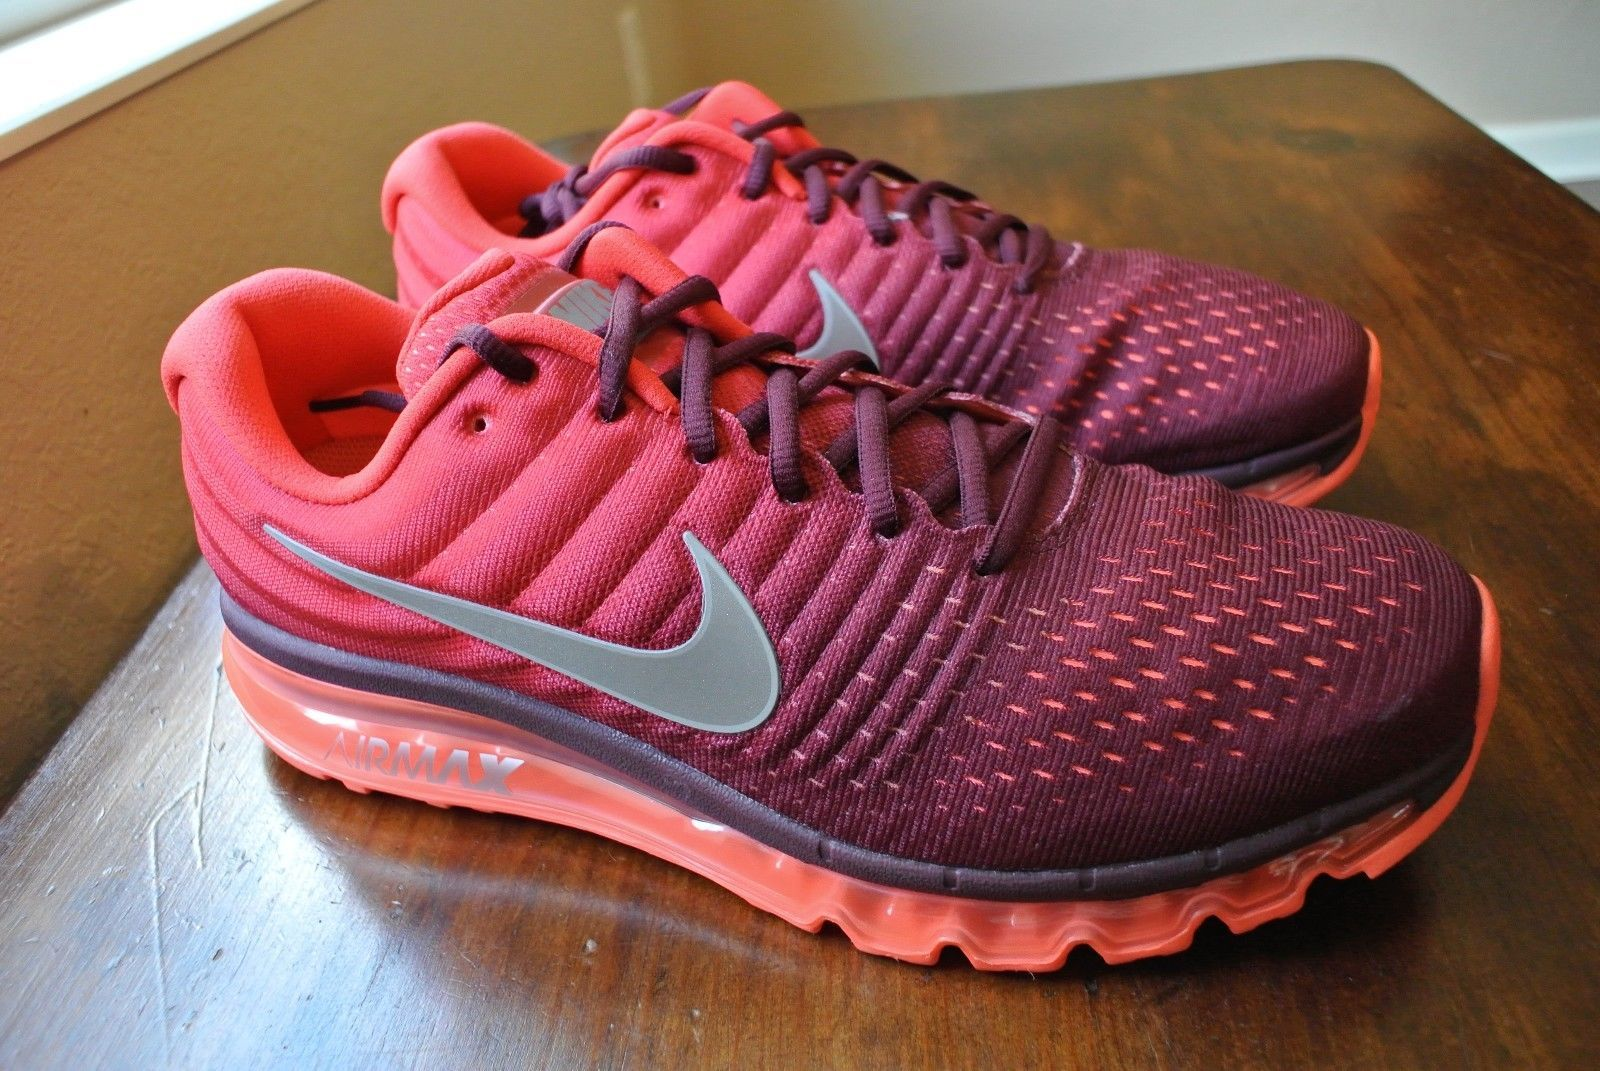 new product 5eda3 a97d8 NIKE AIR MAX 2017 NIGHT MAROON WHITE GYM RED 849559 601 US MENS SHOE SIZE 13